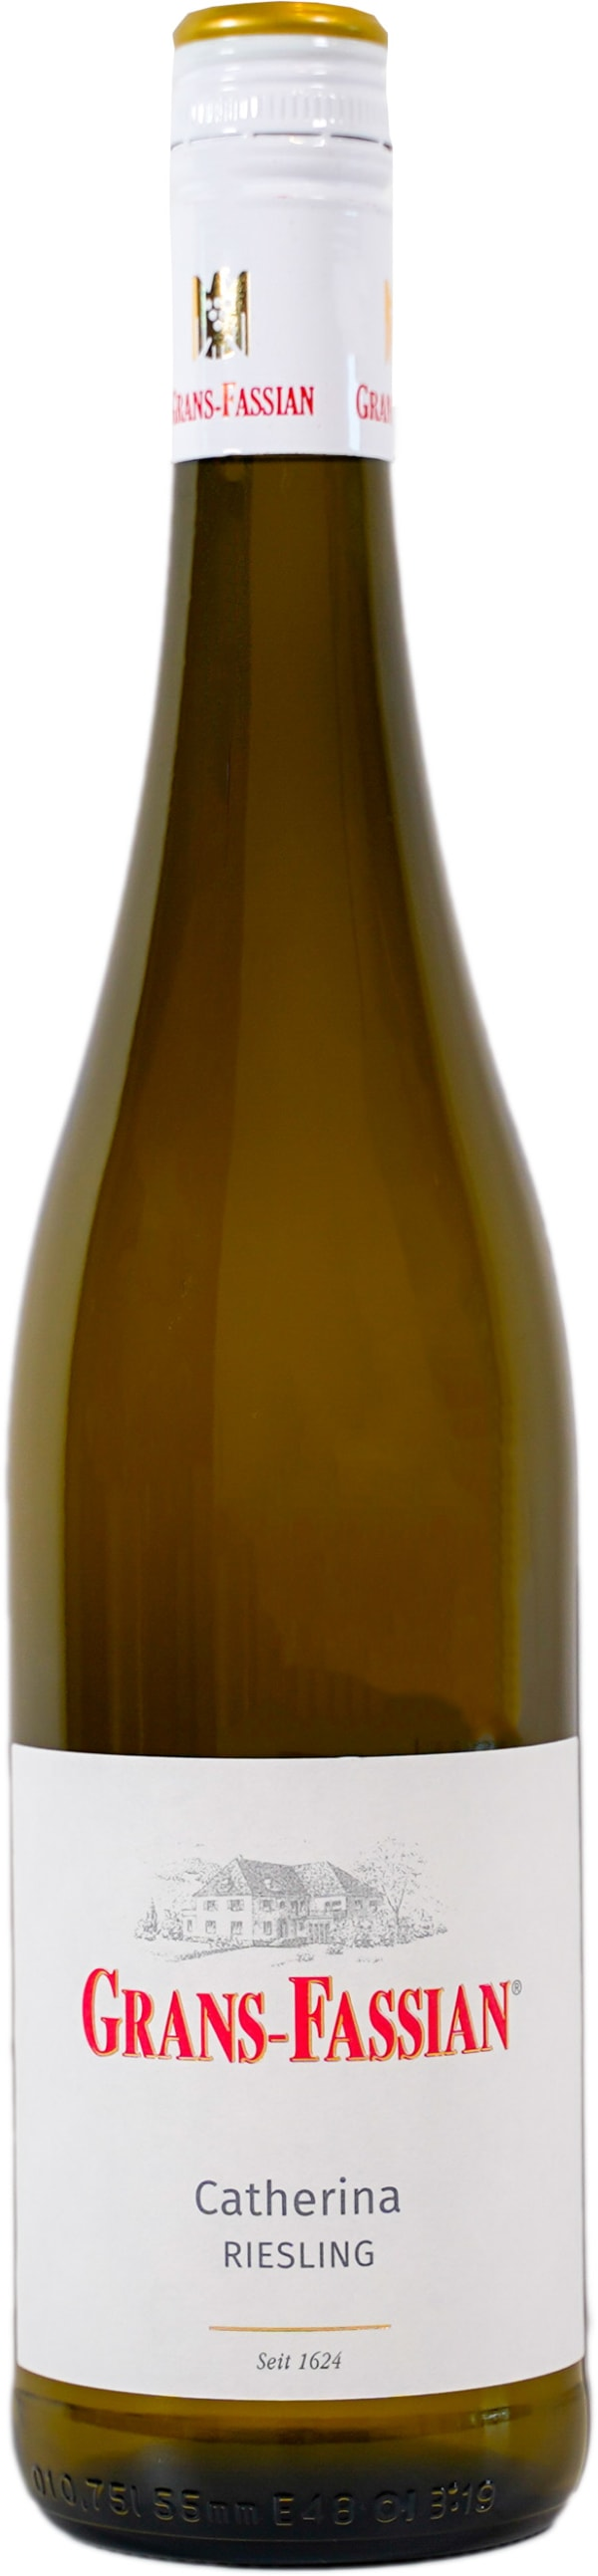 Grans-Fassian Catherina Riesling 2020